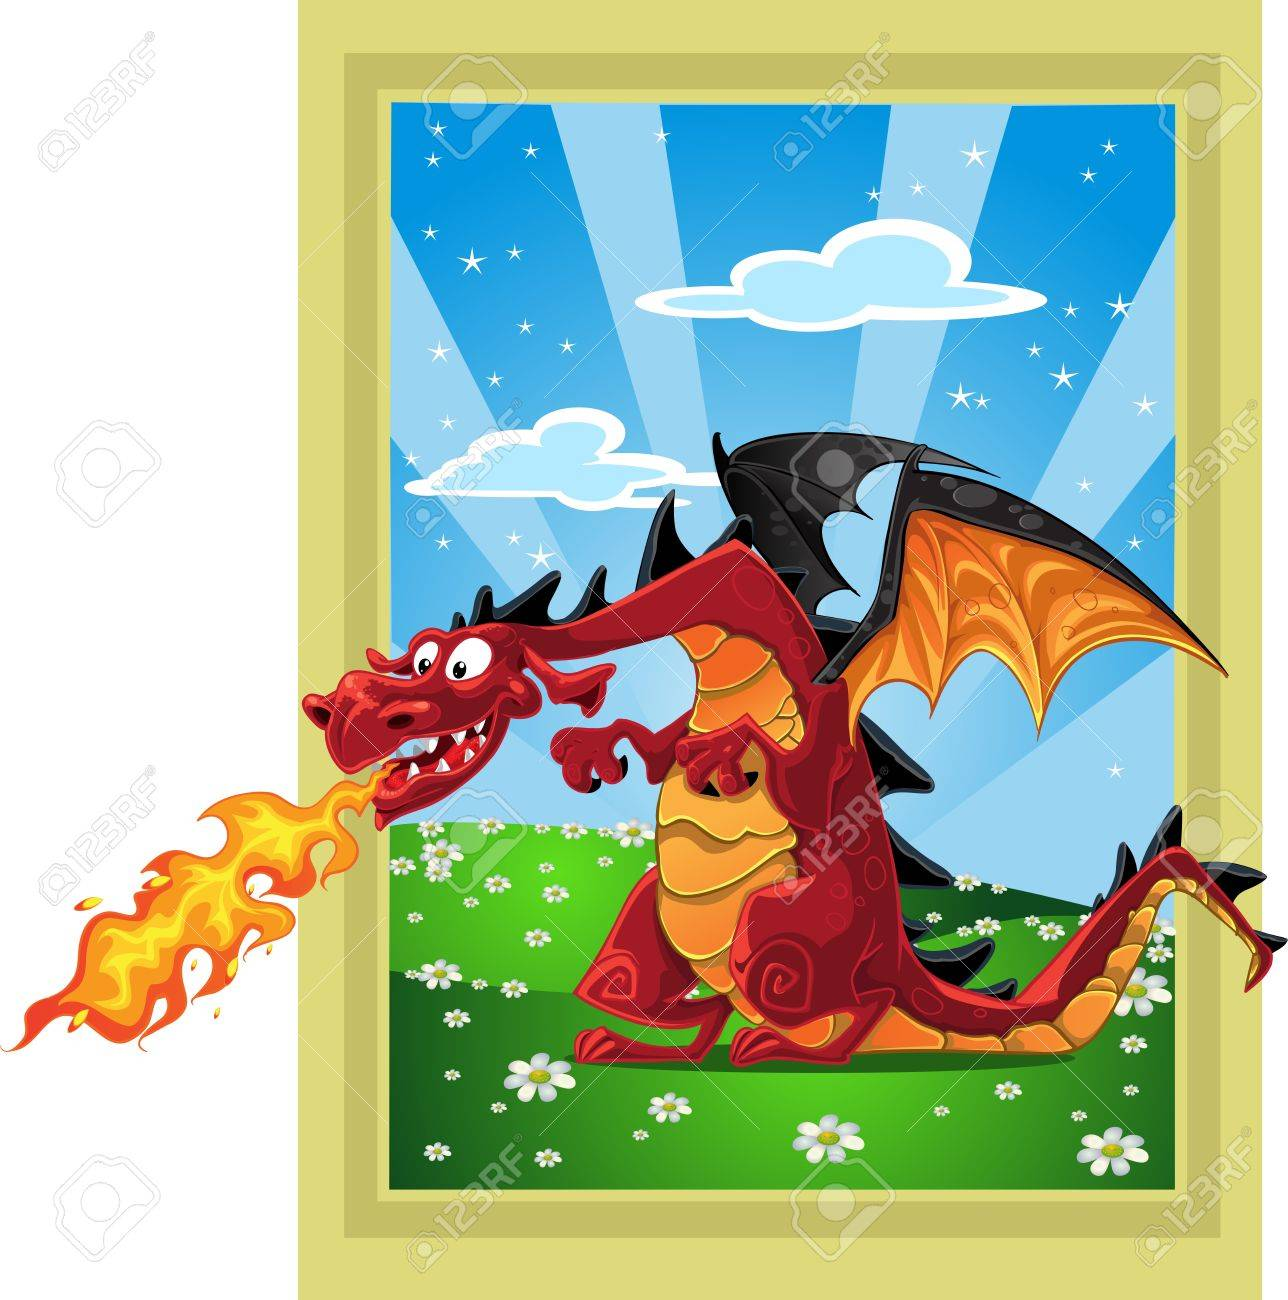 Dragon on the fairytale landscape Stock Vector - 15660667